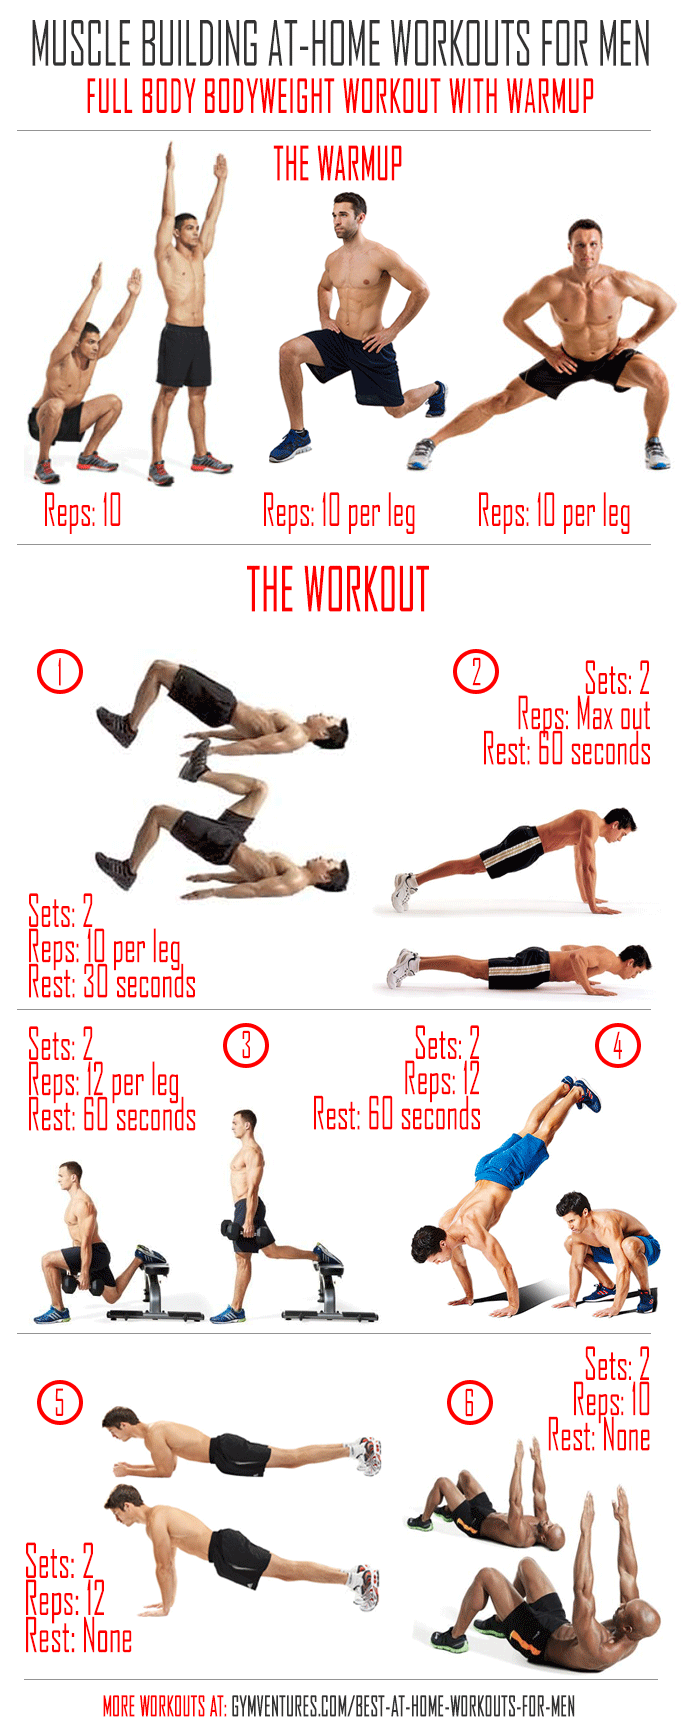 Workout Plan For Men At Home Choosing Among The Best At Home Workouts For Men And Incorporating